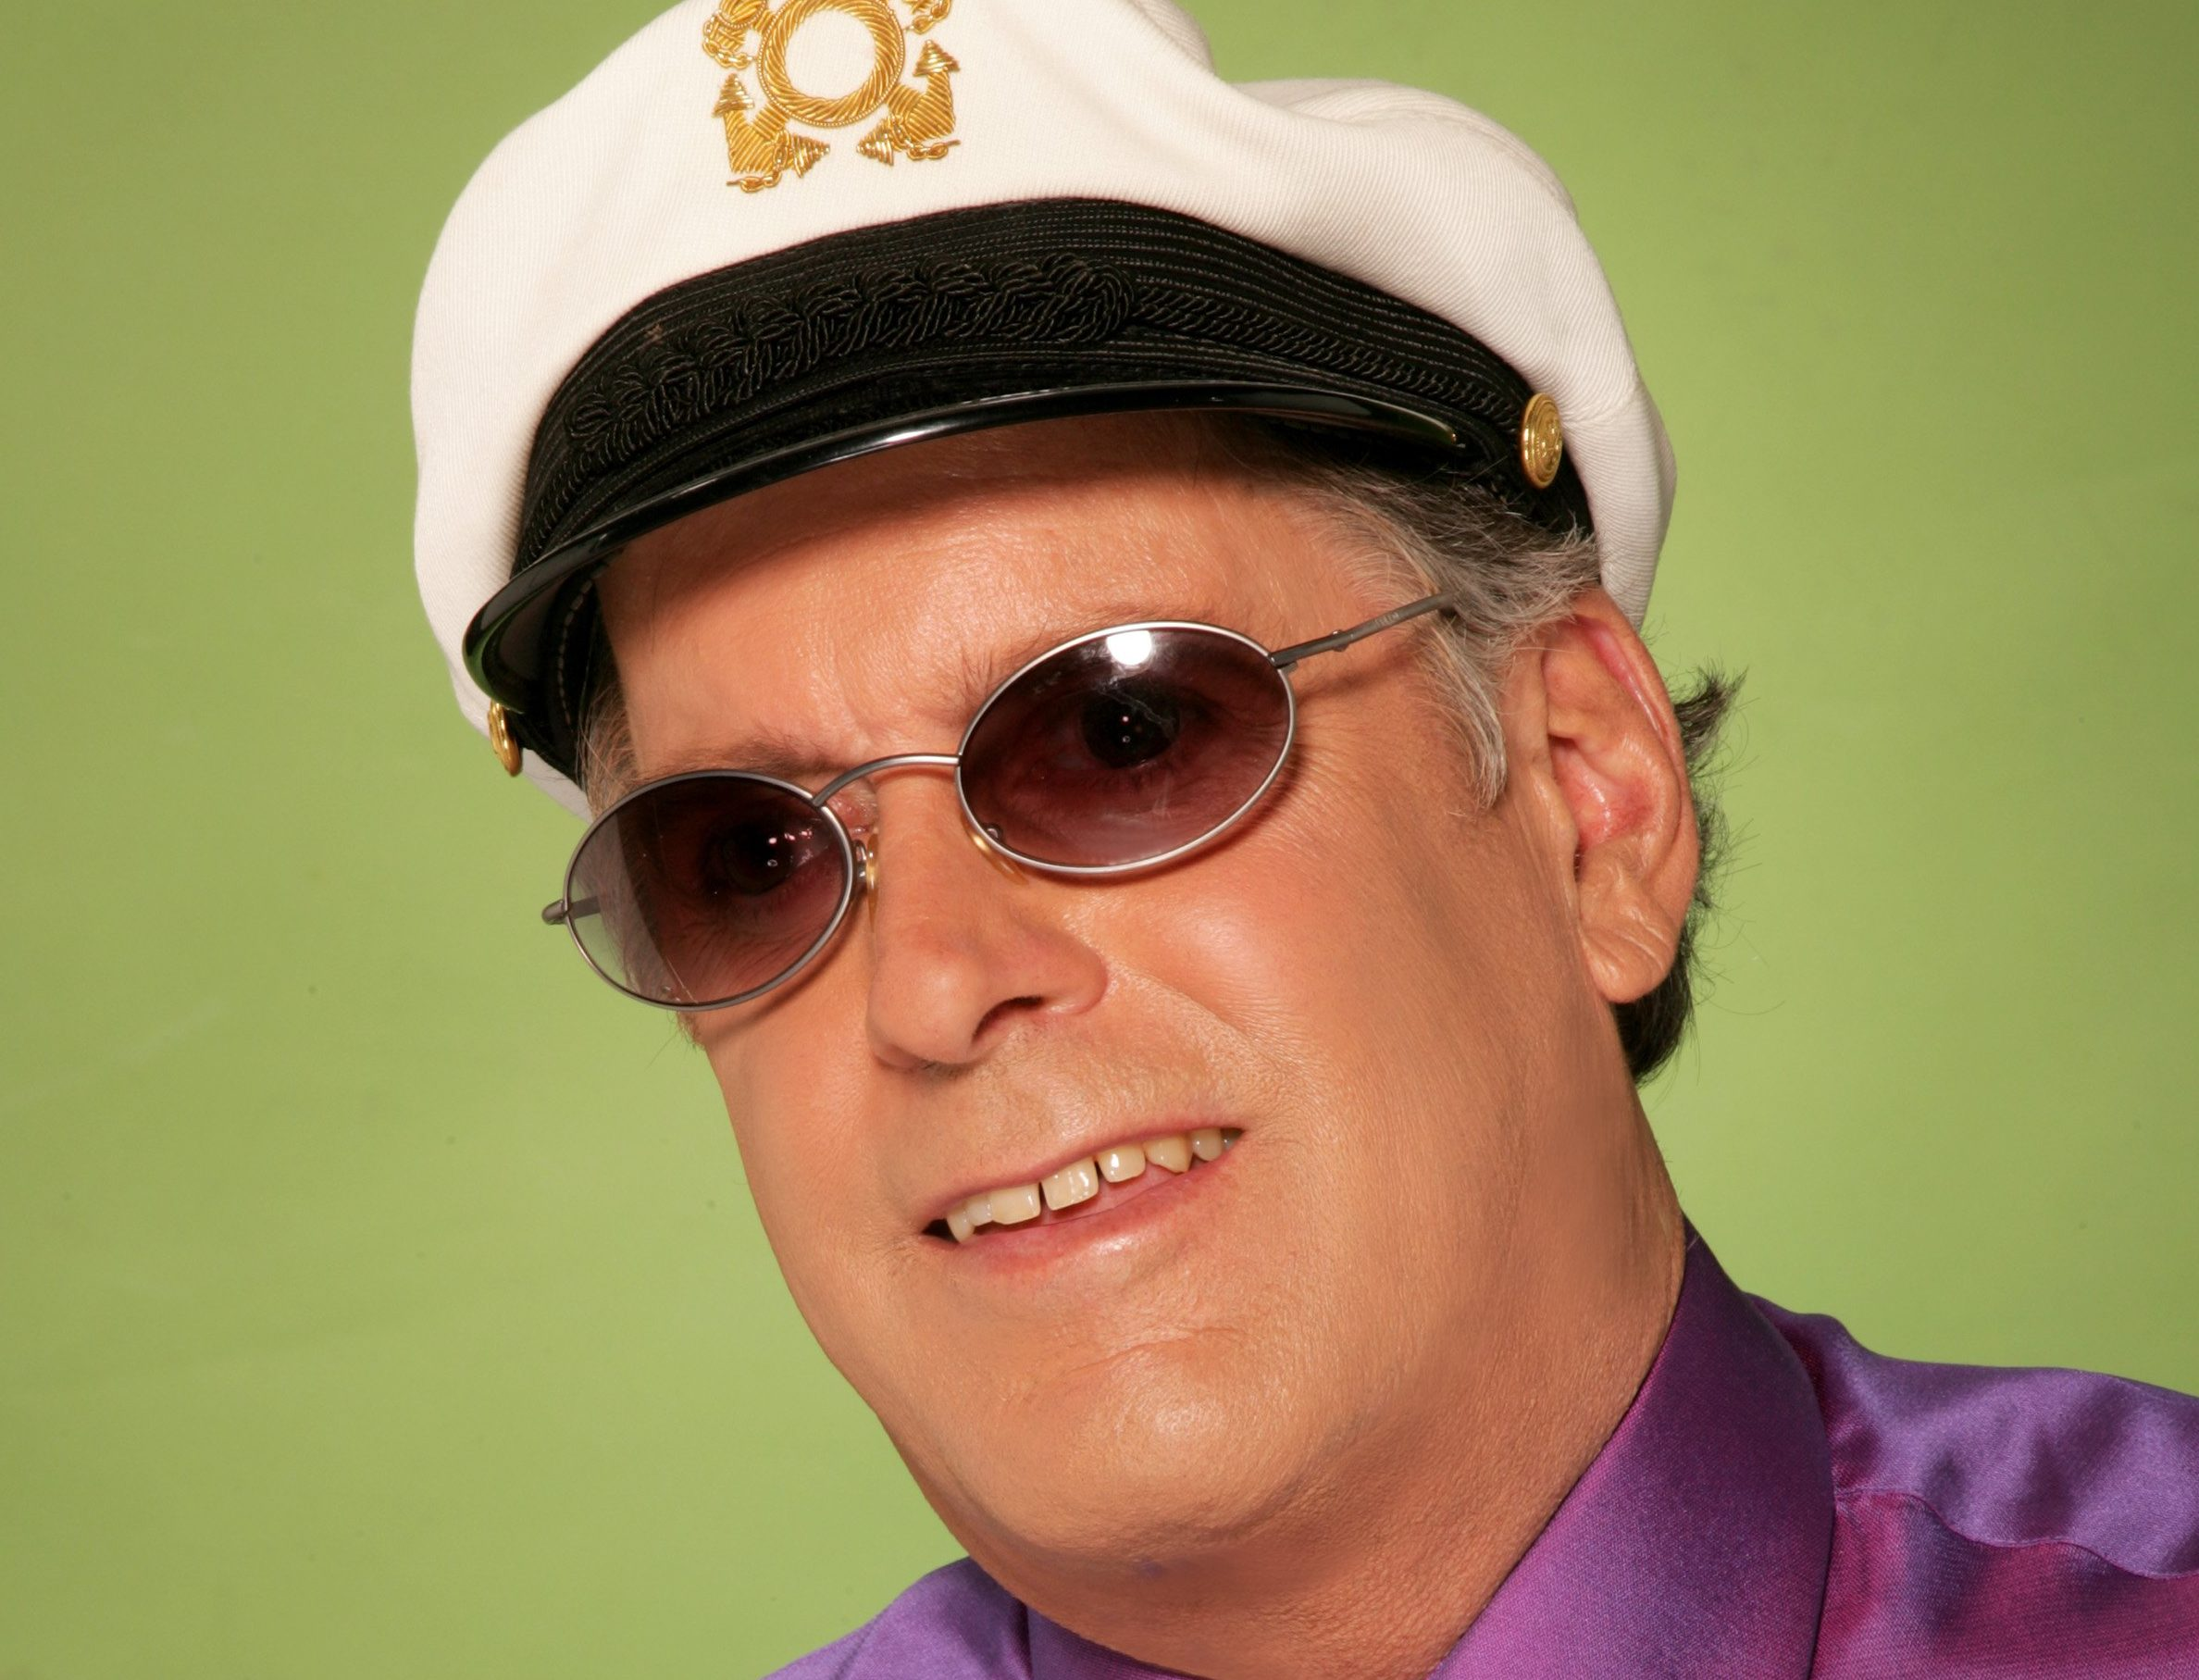 Captain and Tennille's Daryl Dragon dies aged 76